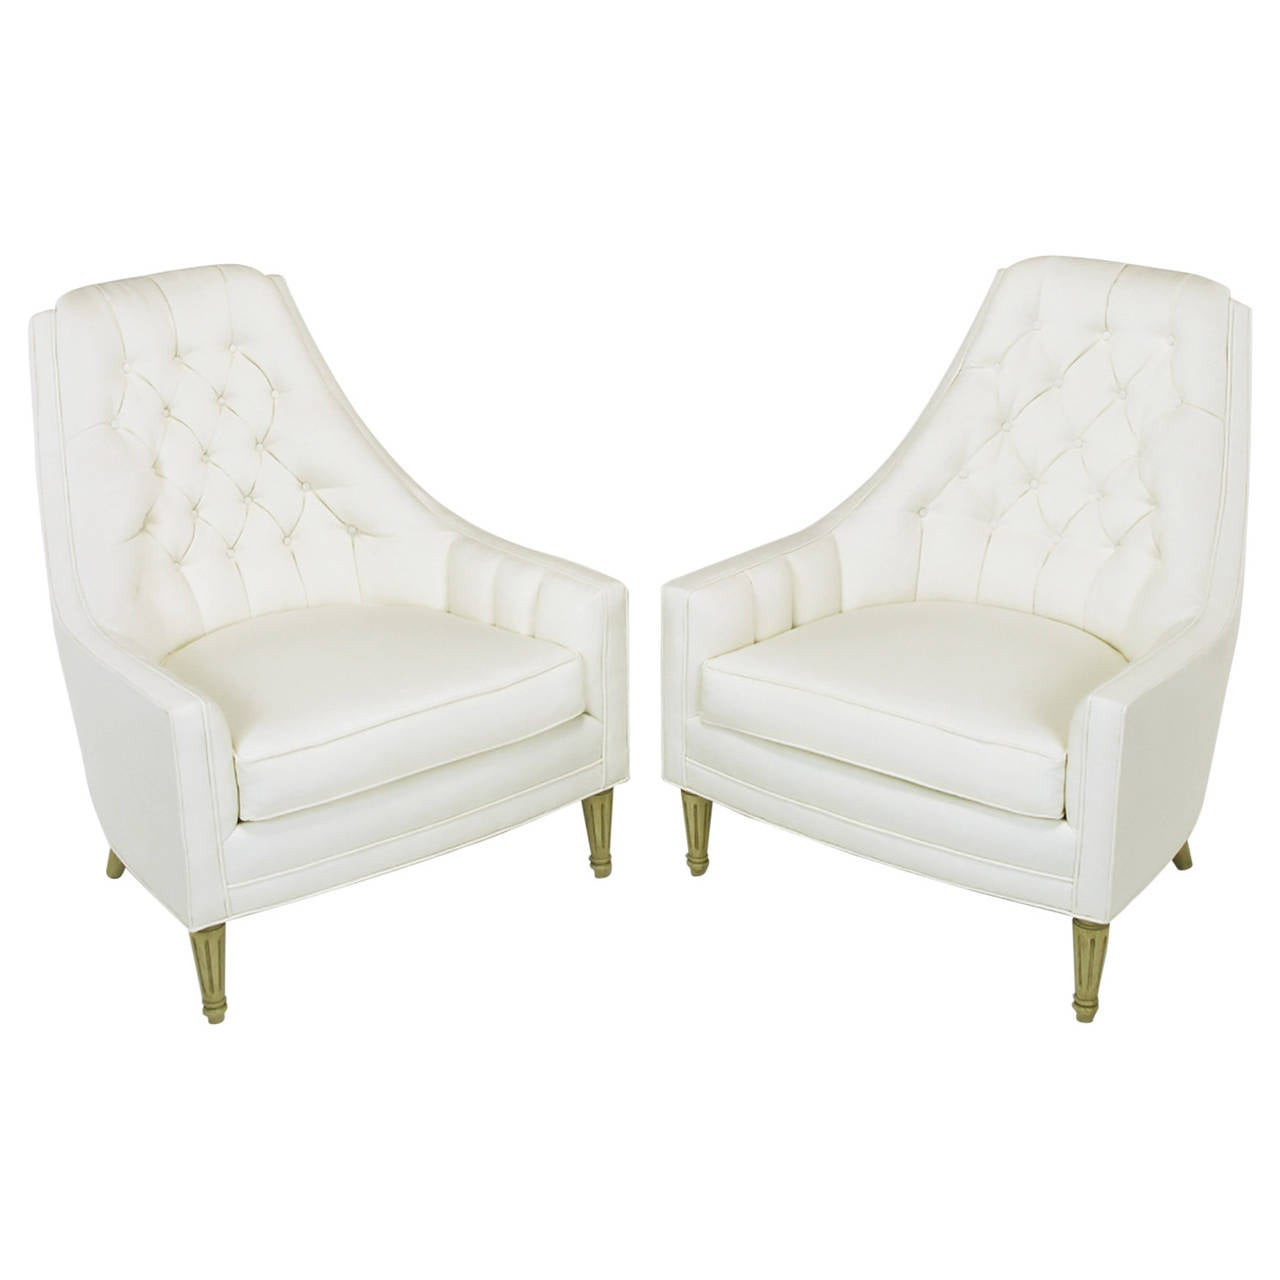 Tufted High Back Chair Pair Of Elegant High Back Button Tufted White Linen Lounge Chairs